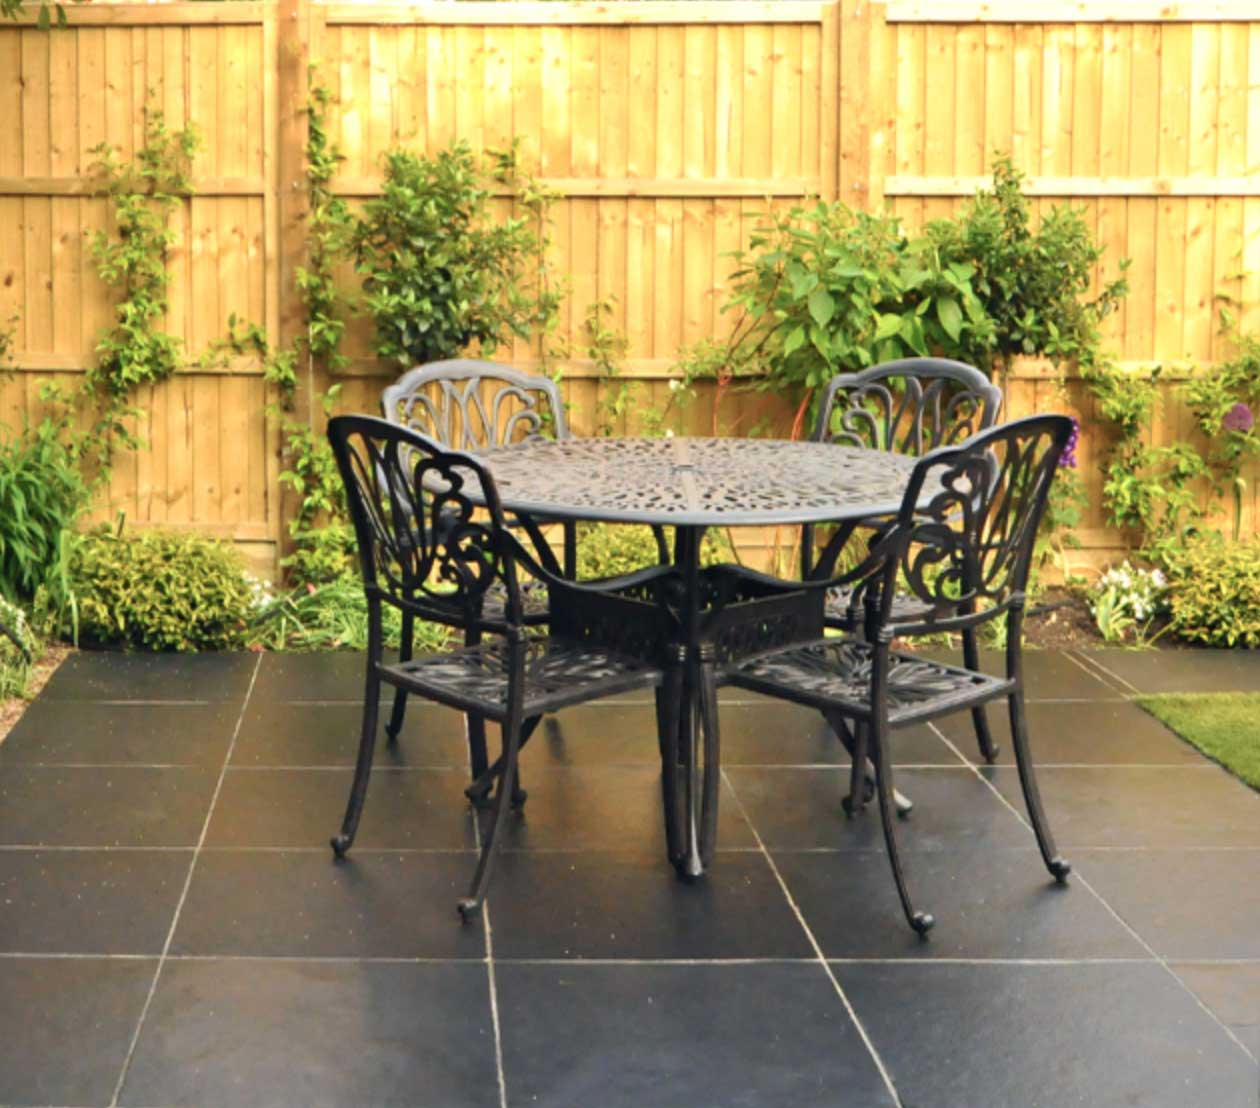 Patio ideas in london gardens for Garden patio design ideas